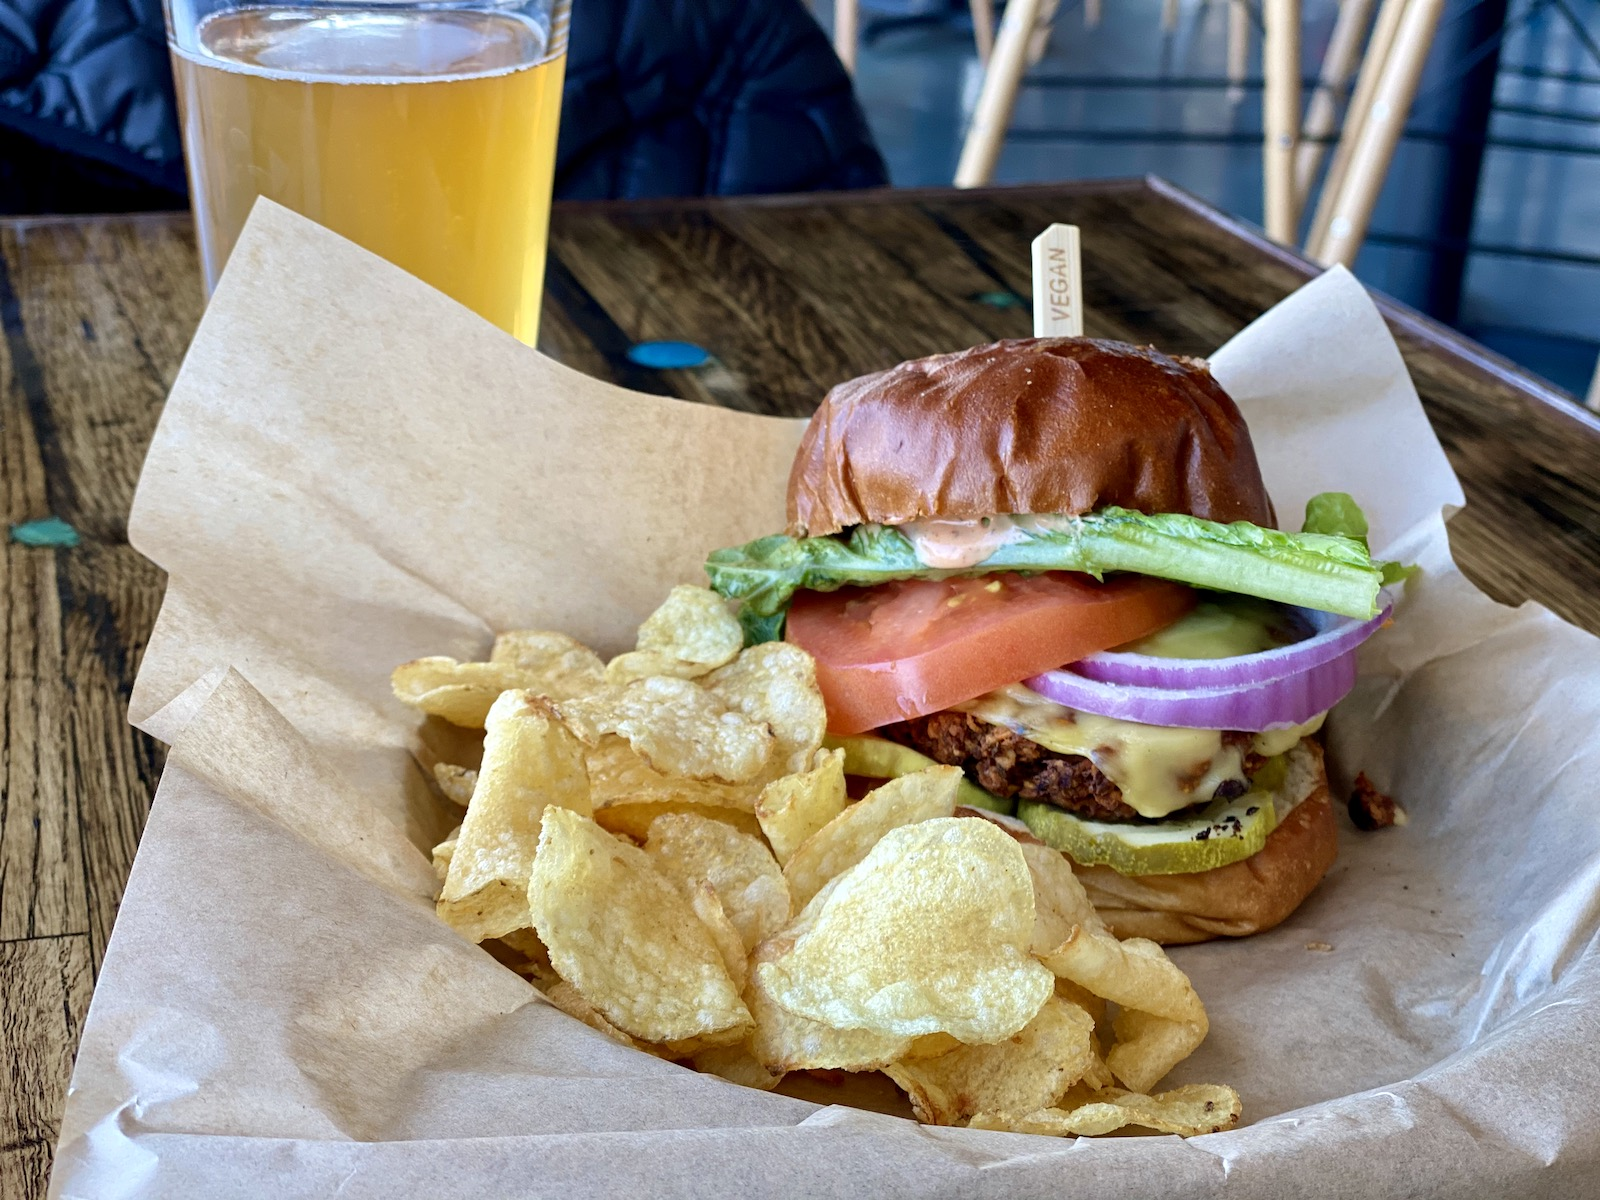 The Classic Burger from Urban Beets